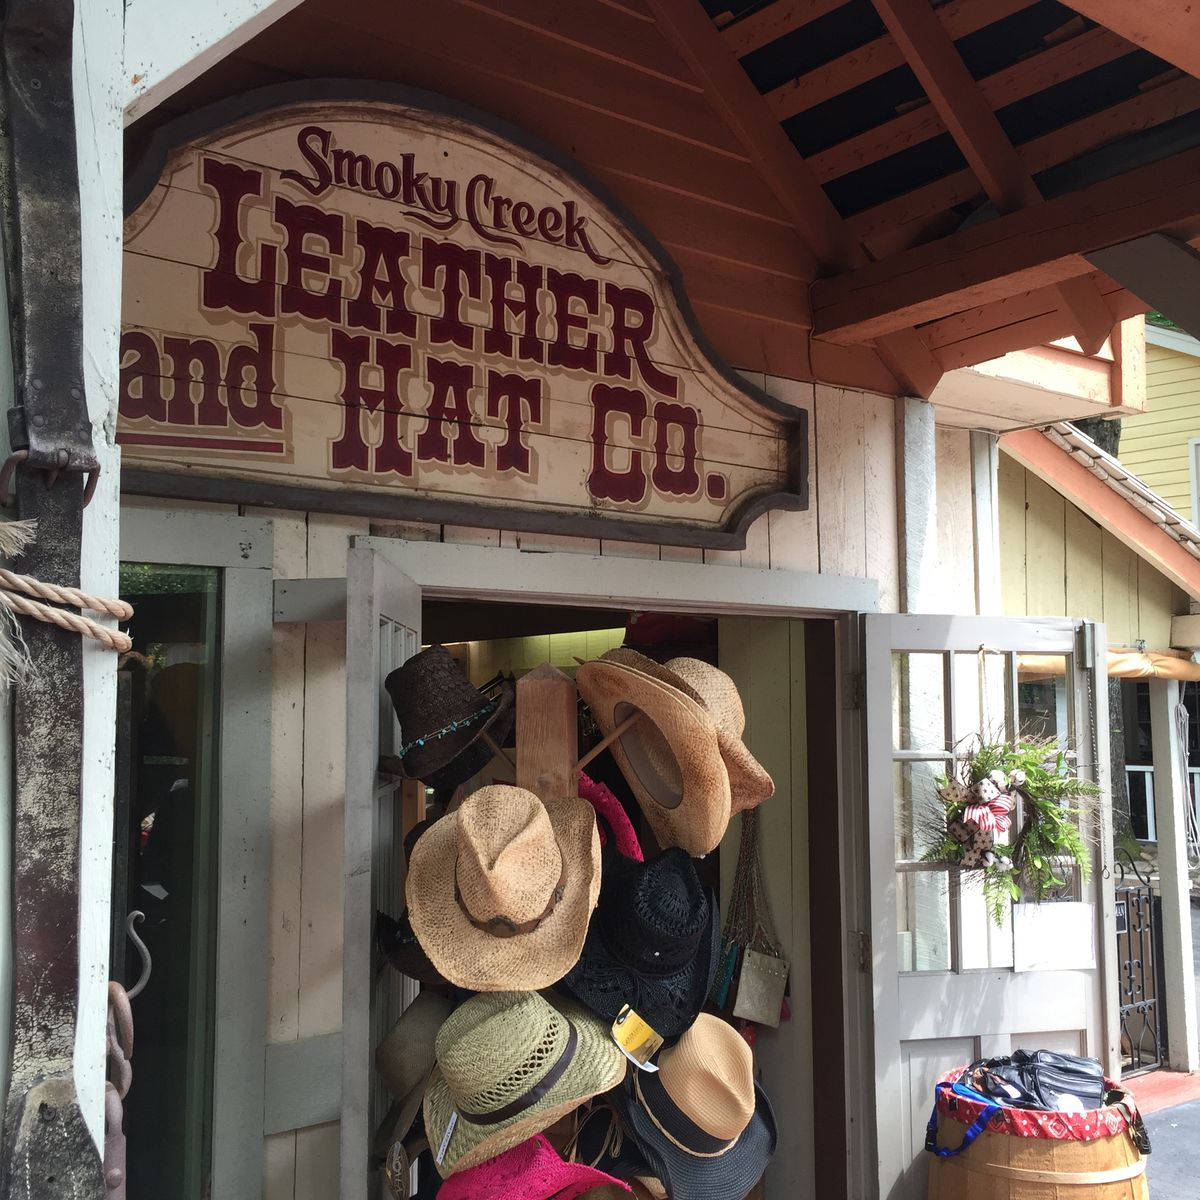 Dolly Parton's Dollywood Theme Park, as Explained by